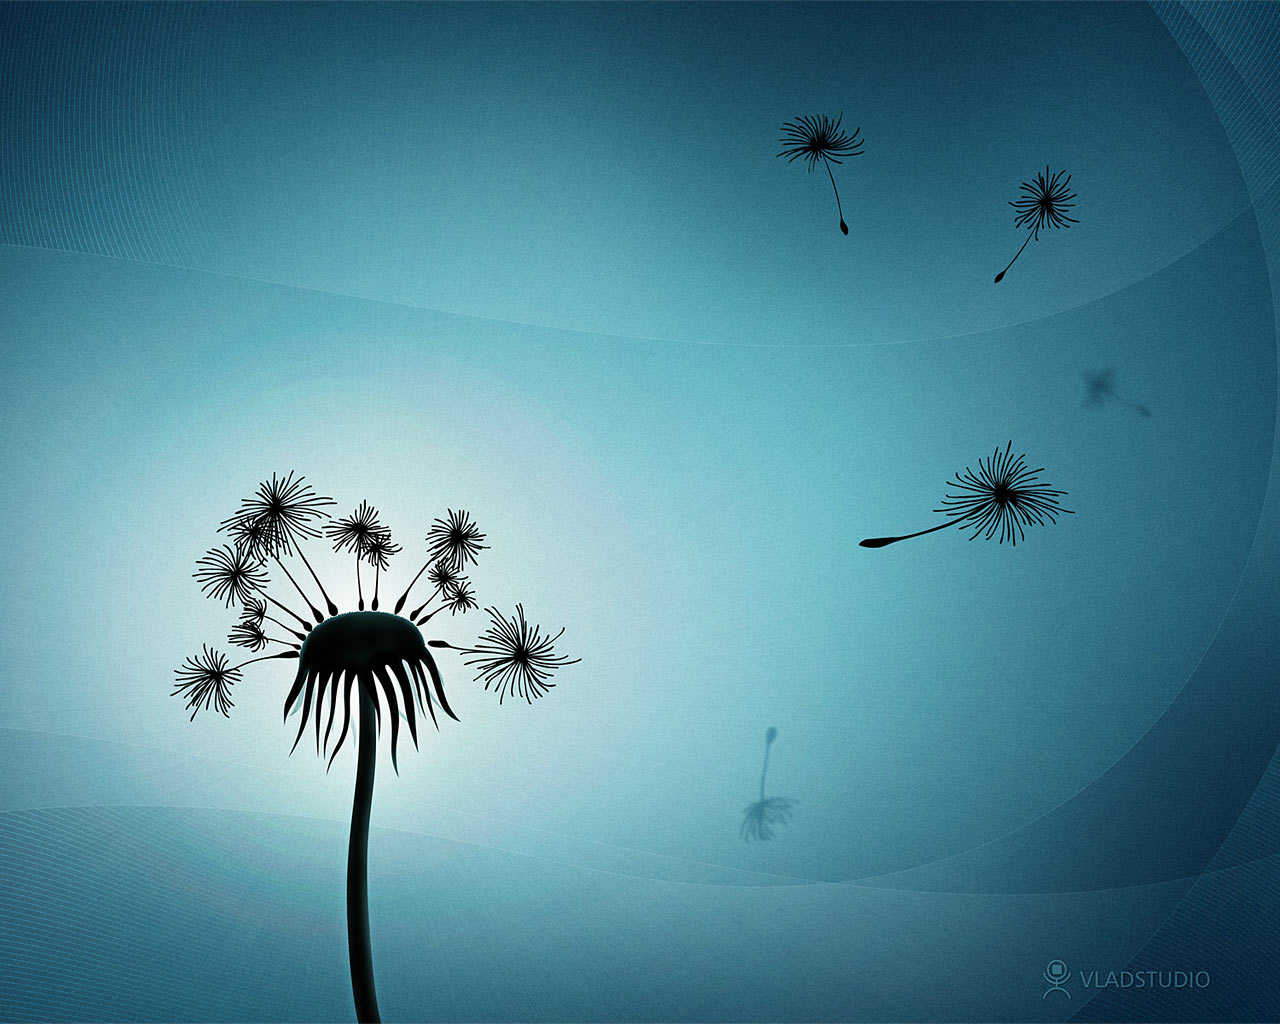 1280x1024 Dandelion bits desktop PC and Mac wallpaper 1280x1024